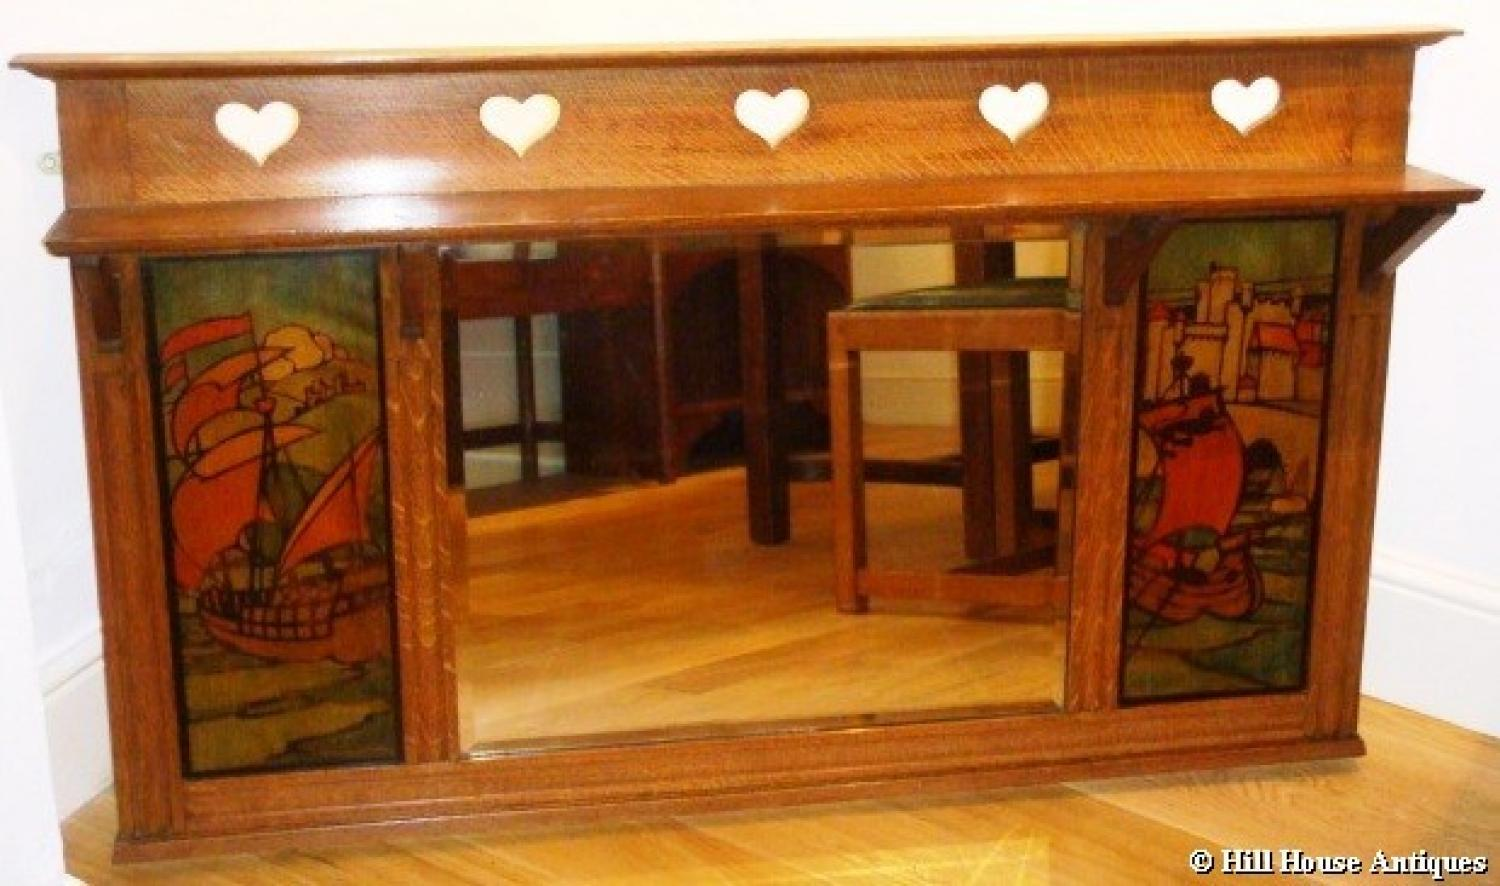 Shapland & Petter overmantle mirror